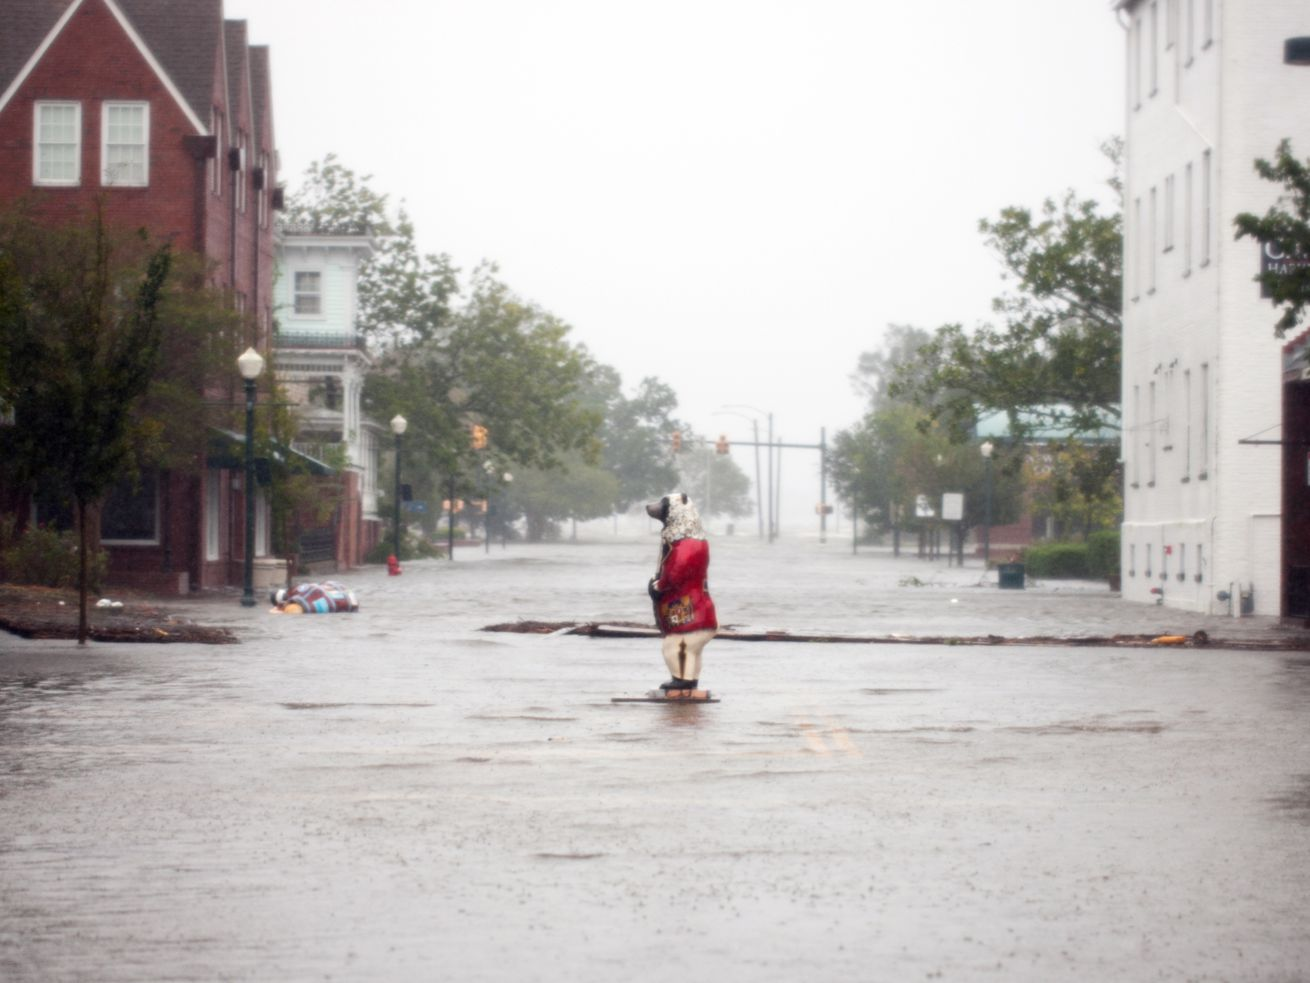 A bear statue stands amid flood waters in New Bern, North Carolina, September 14, 2018.